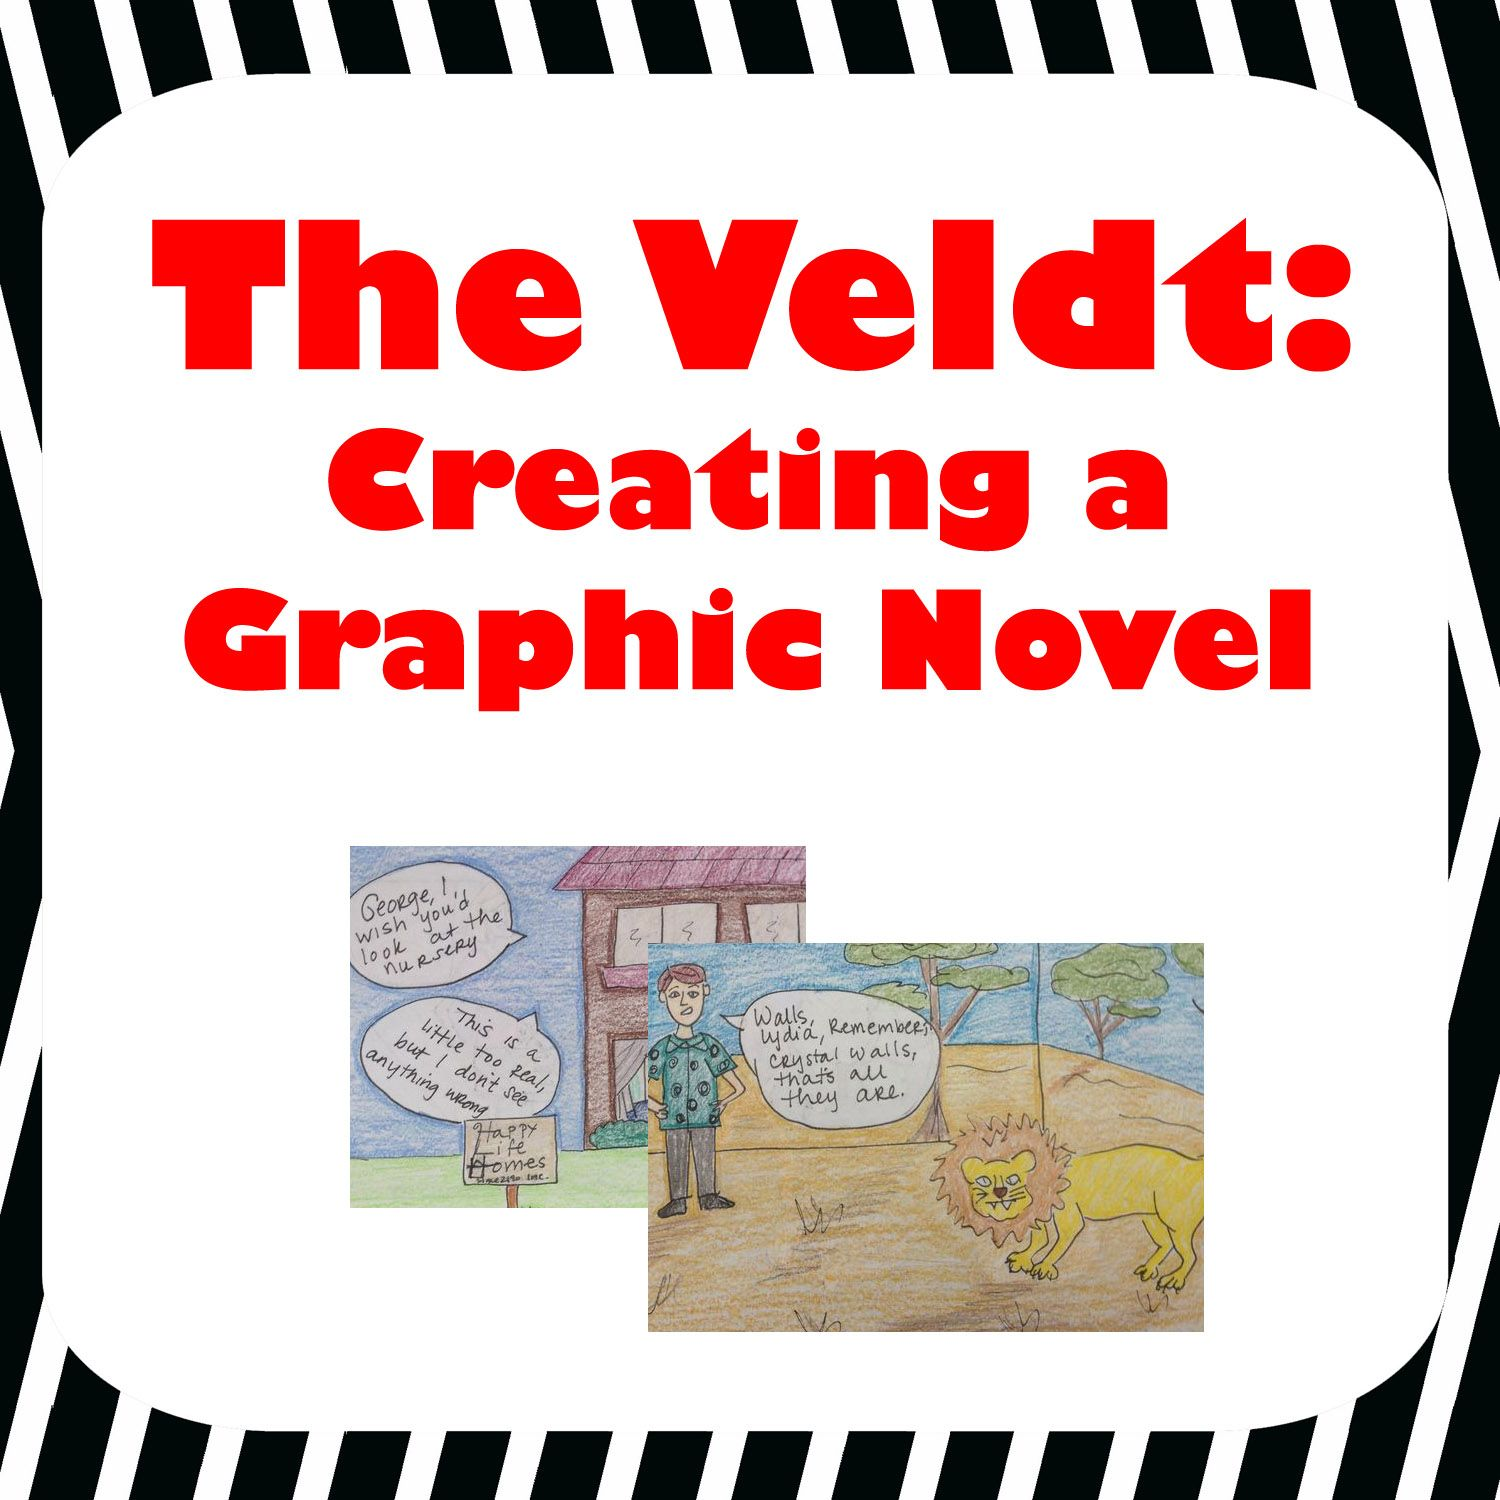 the veldt essay The veldt essaysin america today, people usually have simple lives there have been many inventions in the past century that help us live our everyday life in the story, the veldt, there are inventions that seem unimaginable just as a dishwasher might have been inconceivable a century.